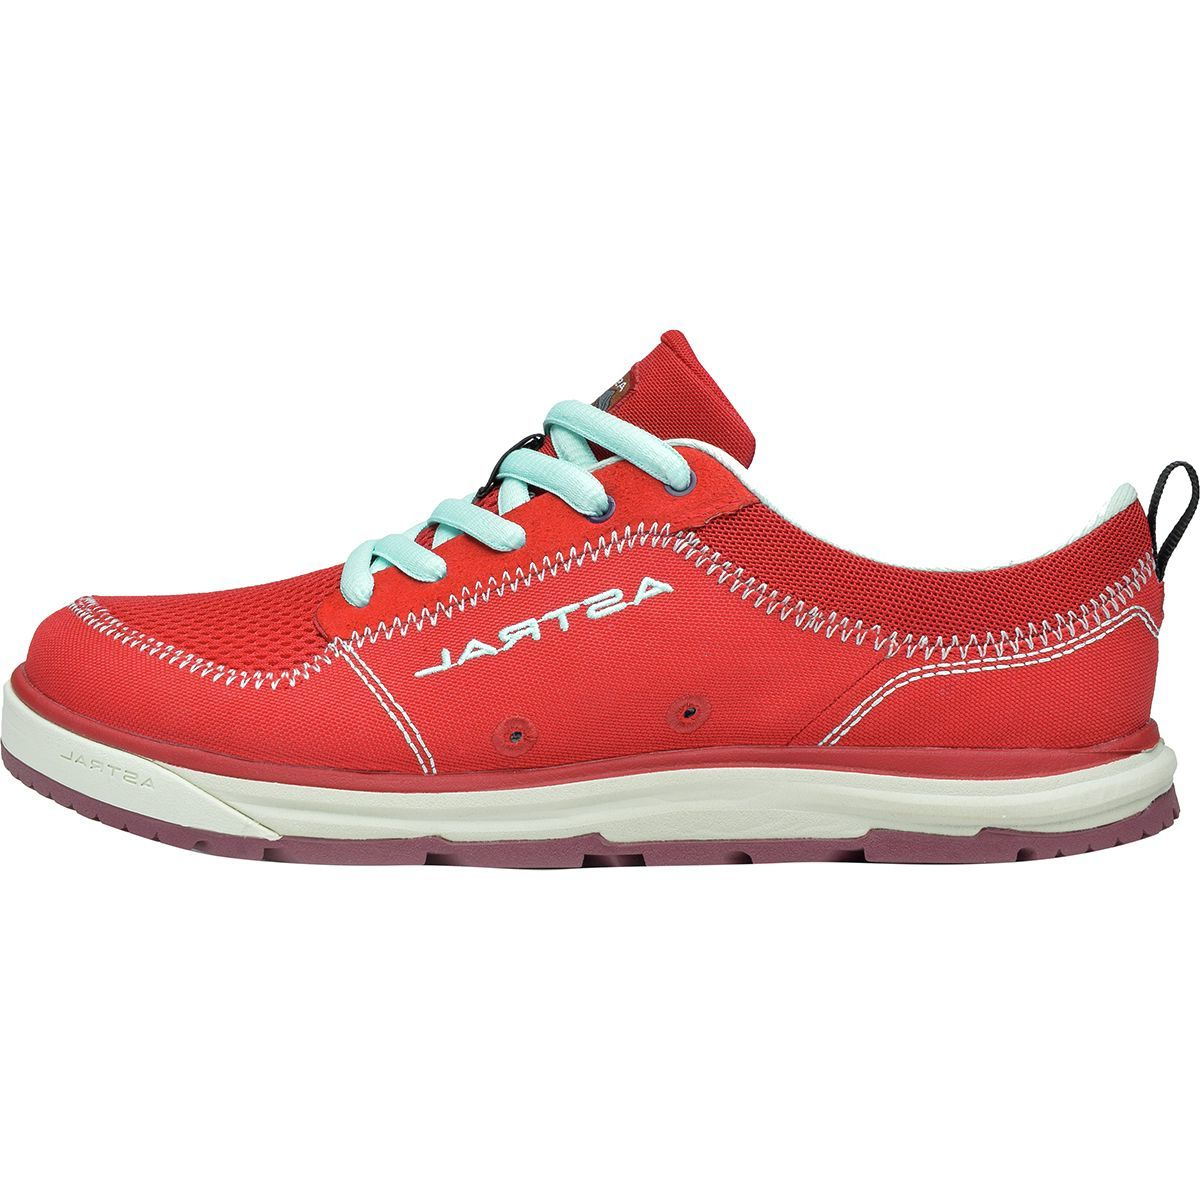 Astral Brewess 2 Water Shoe - Women's